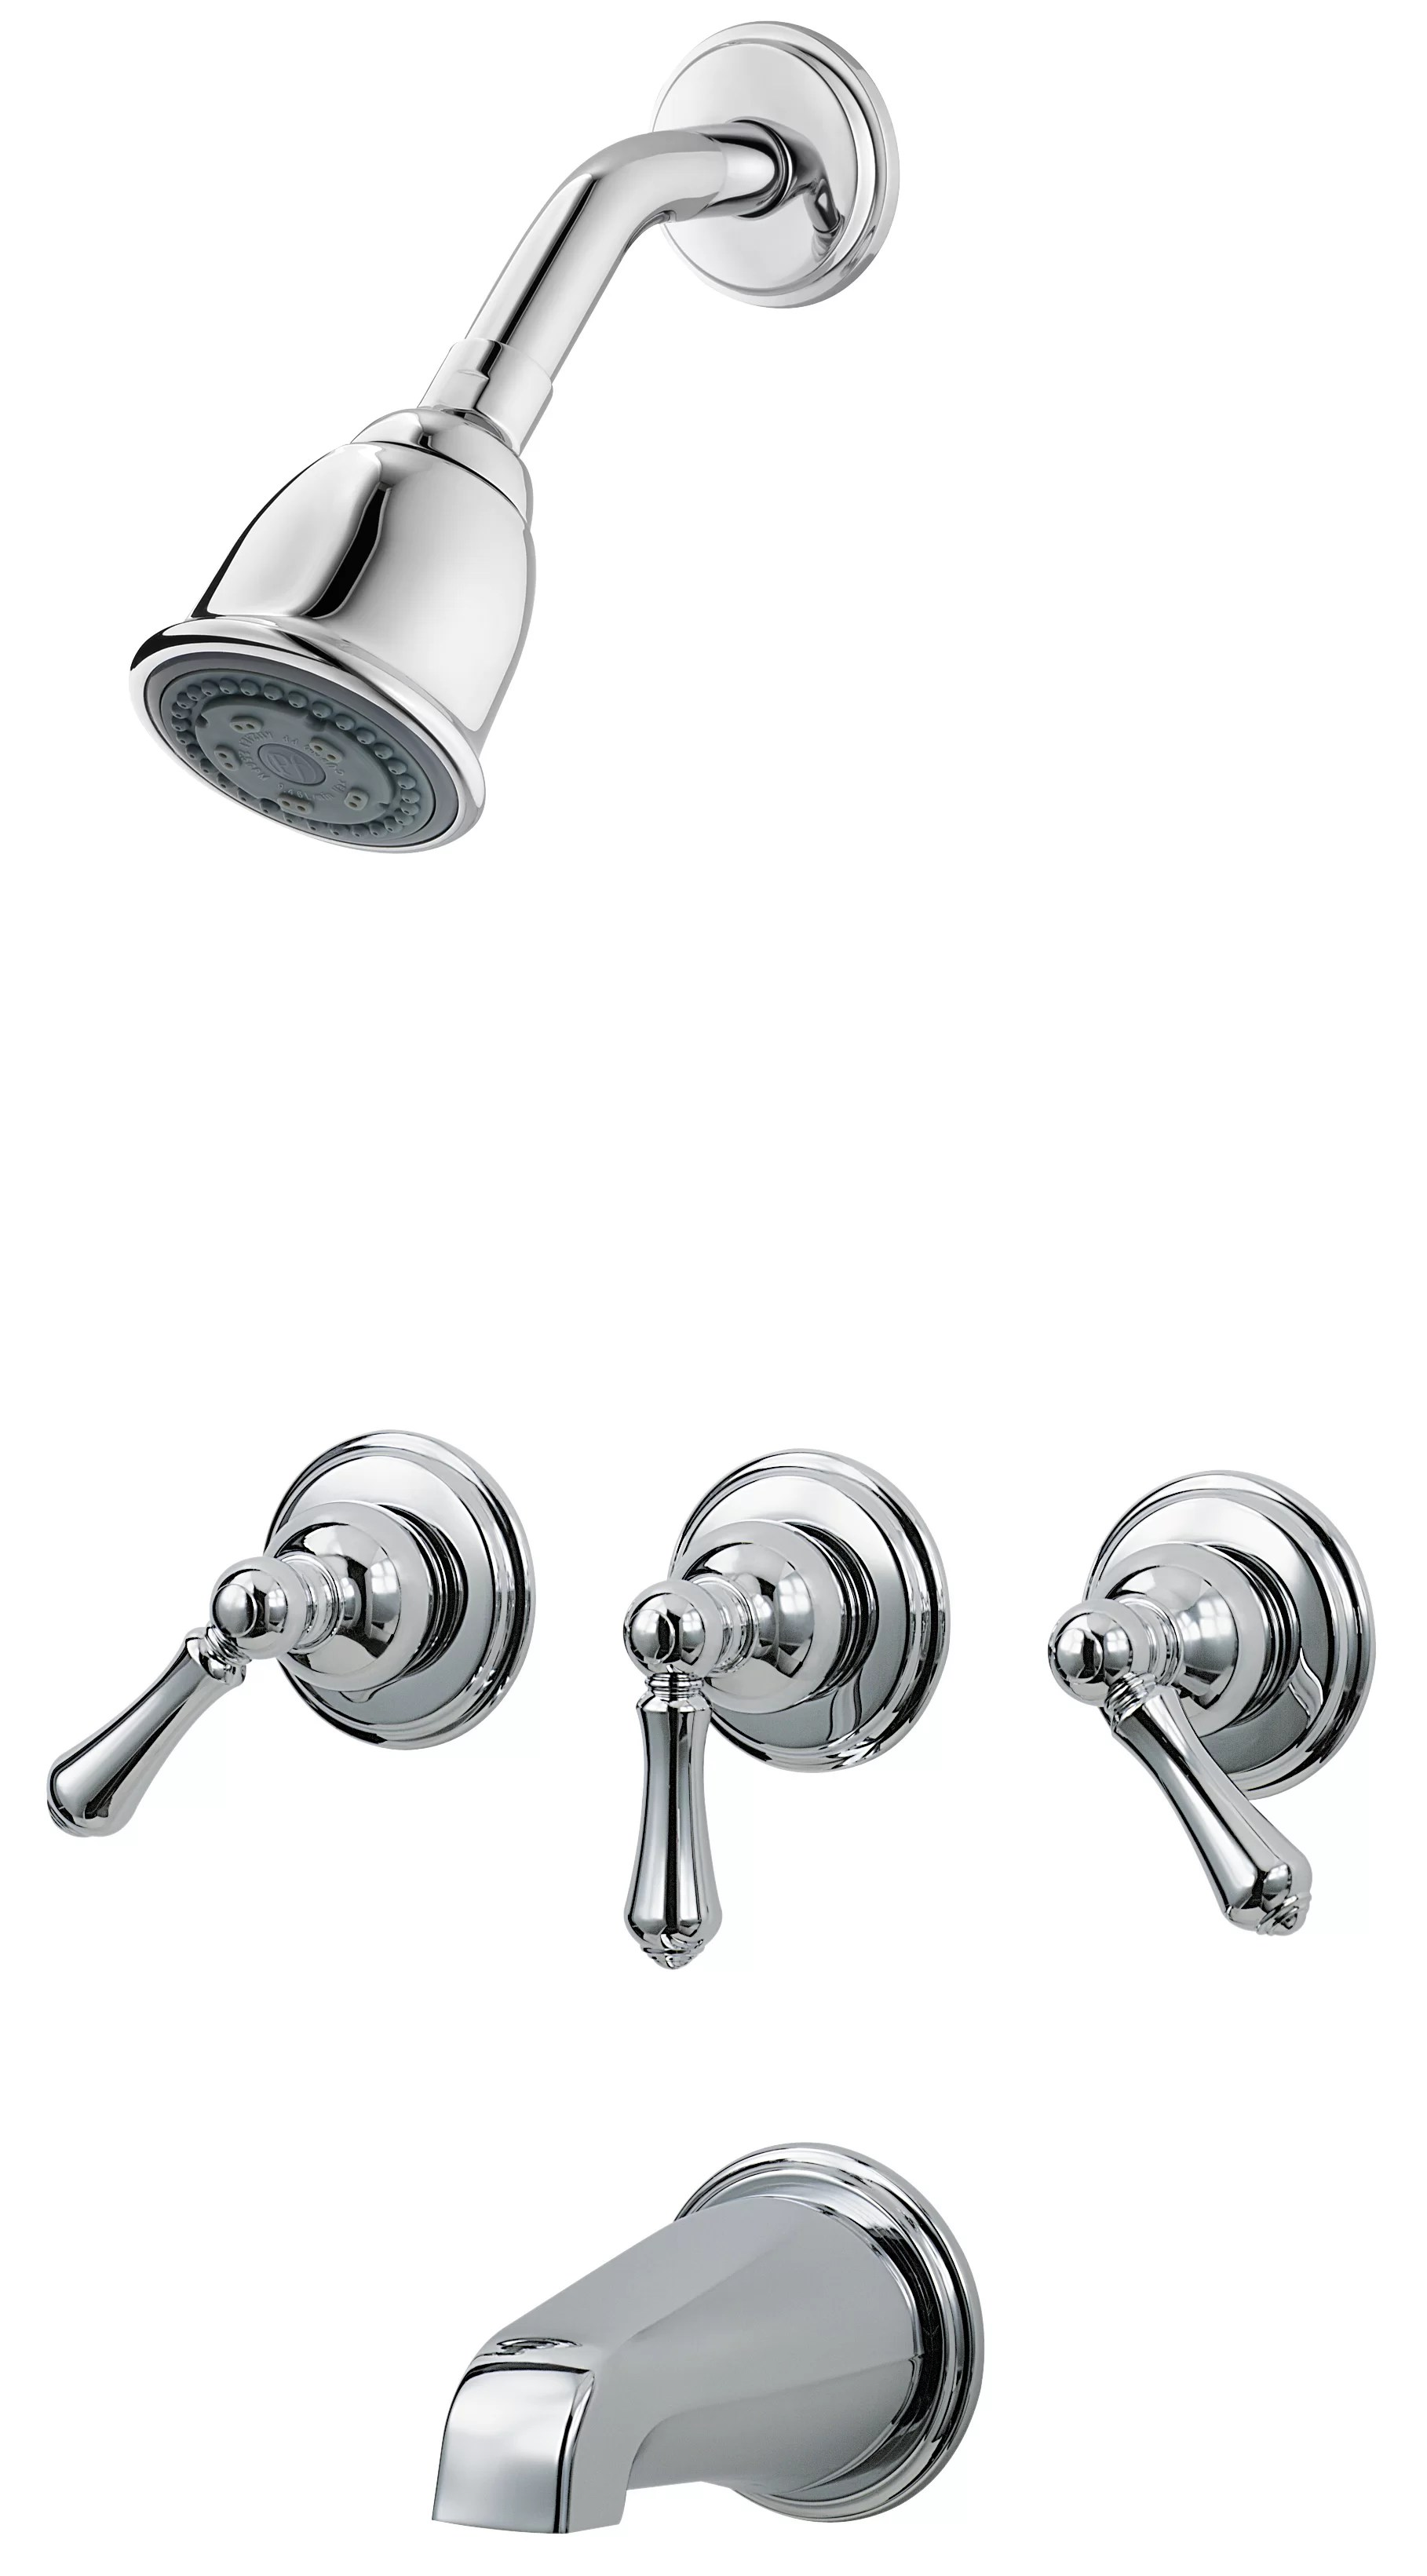 Pfister 3 Handle Thermostatic Tub And Shower Faucet With Trim Reviews Wayfair Ca